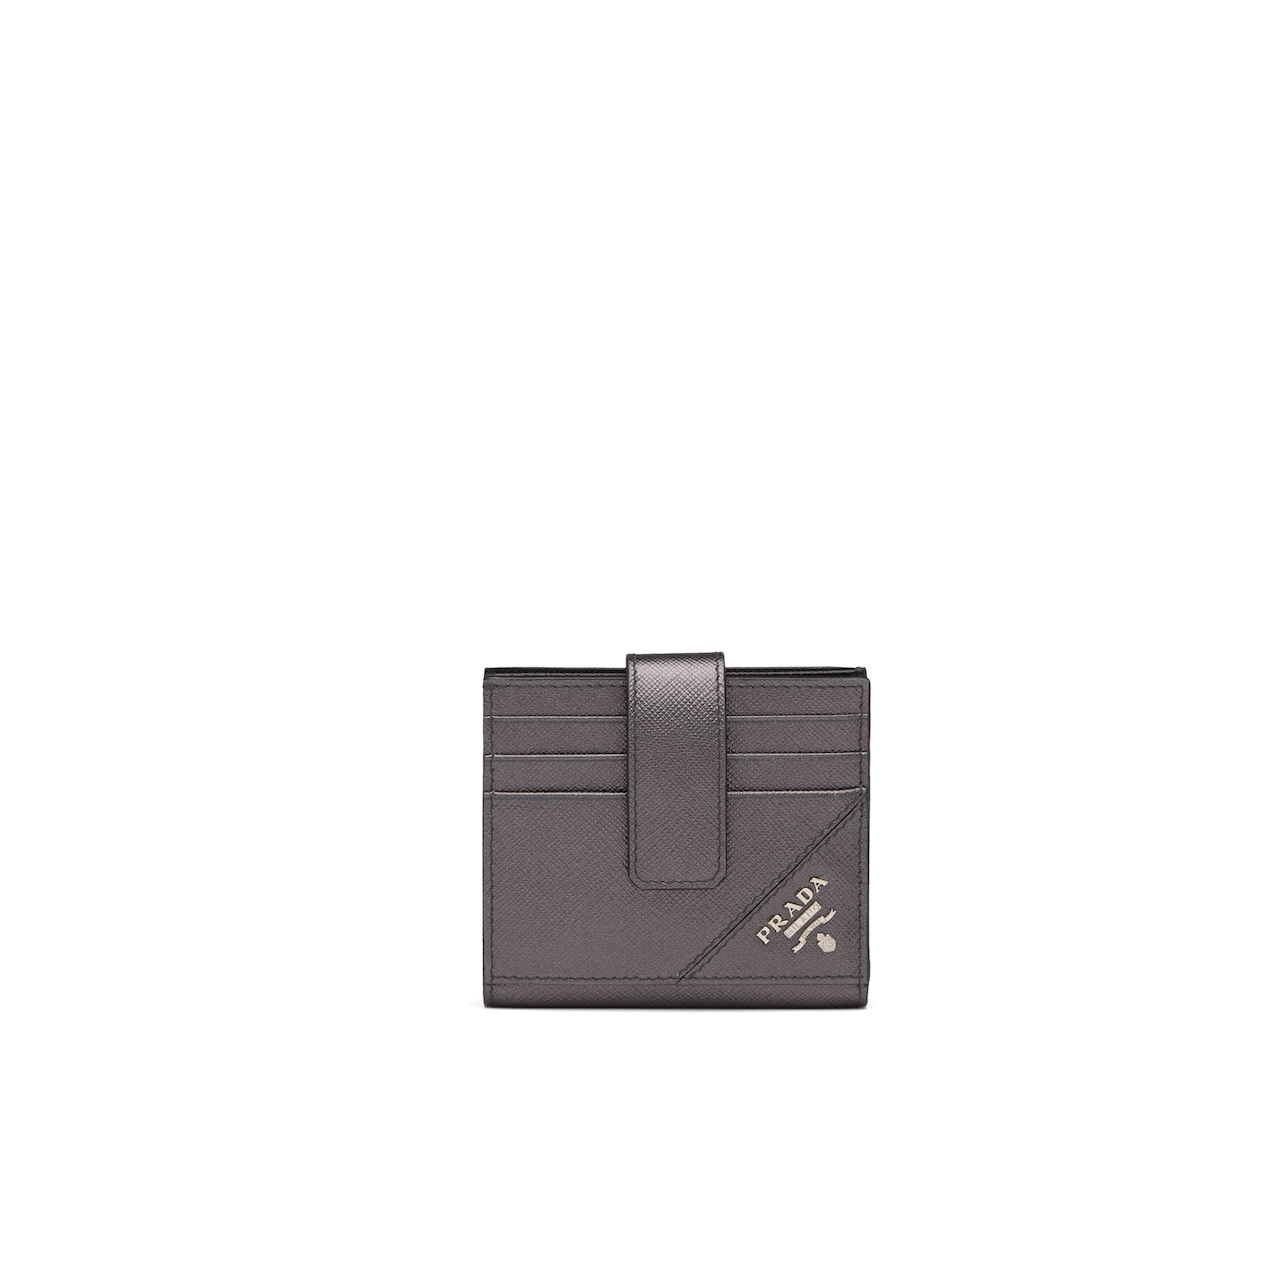 Prada Saffiano leather card holder 1